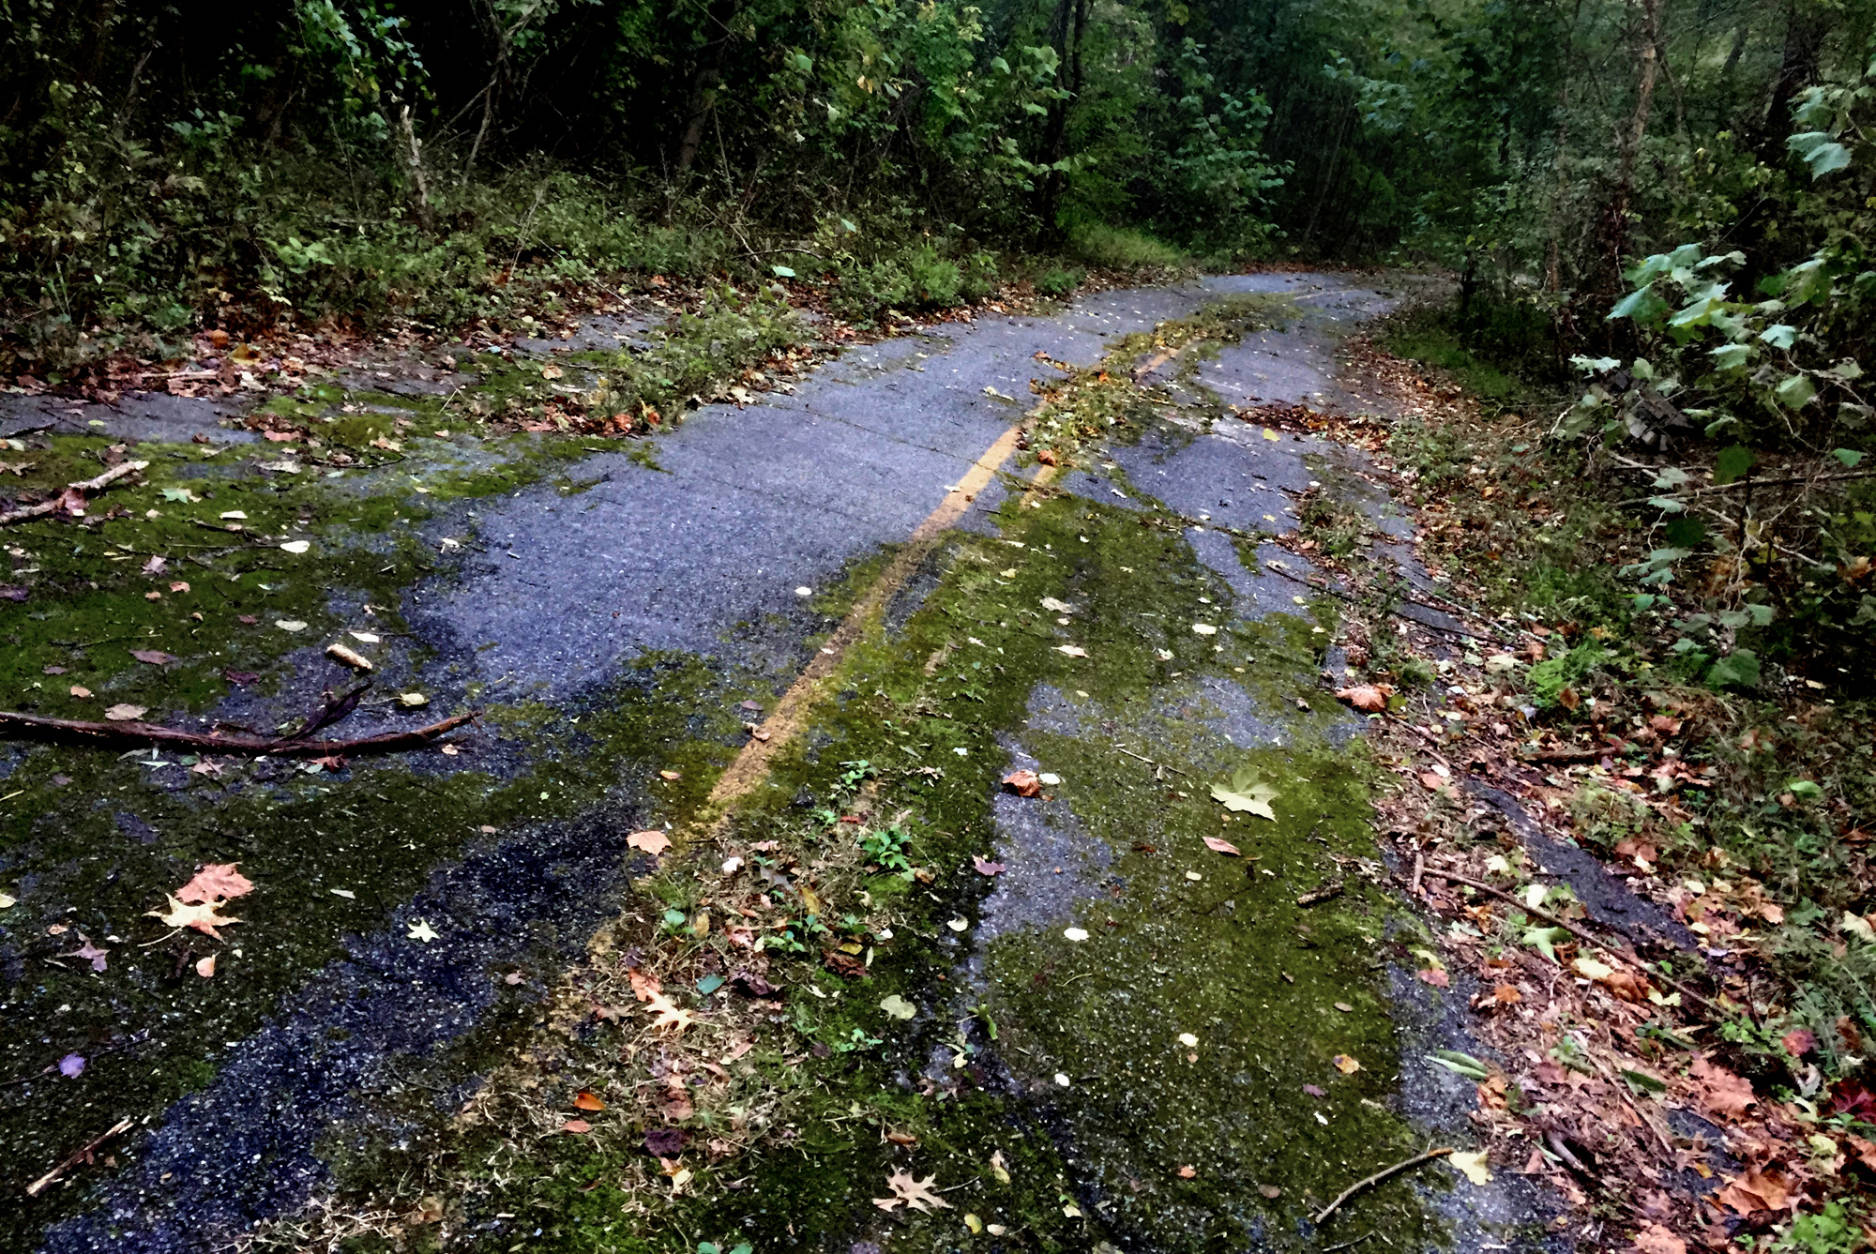 Sharperville Road – Accokeek, Md.  Sharperville Road was a busy cut-through and was known for being dangerous. Highway engineers attributed the abnormally high number of crashes to substandard road geometry near the bridge. Others believed the road was cursed. It was closed about 10 years ago. (WTOP/Dave Dildine)